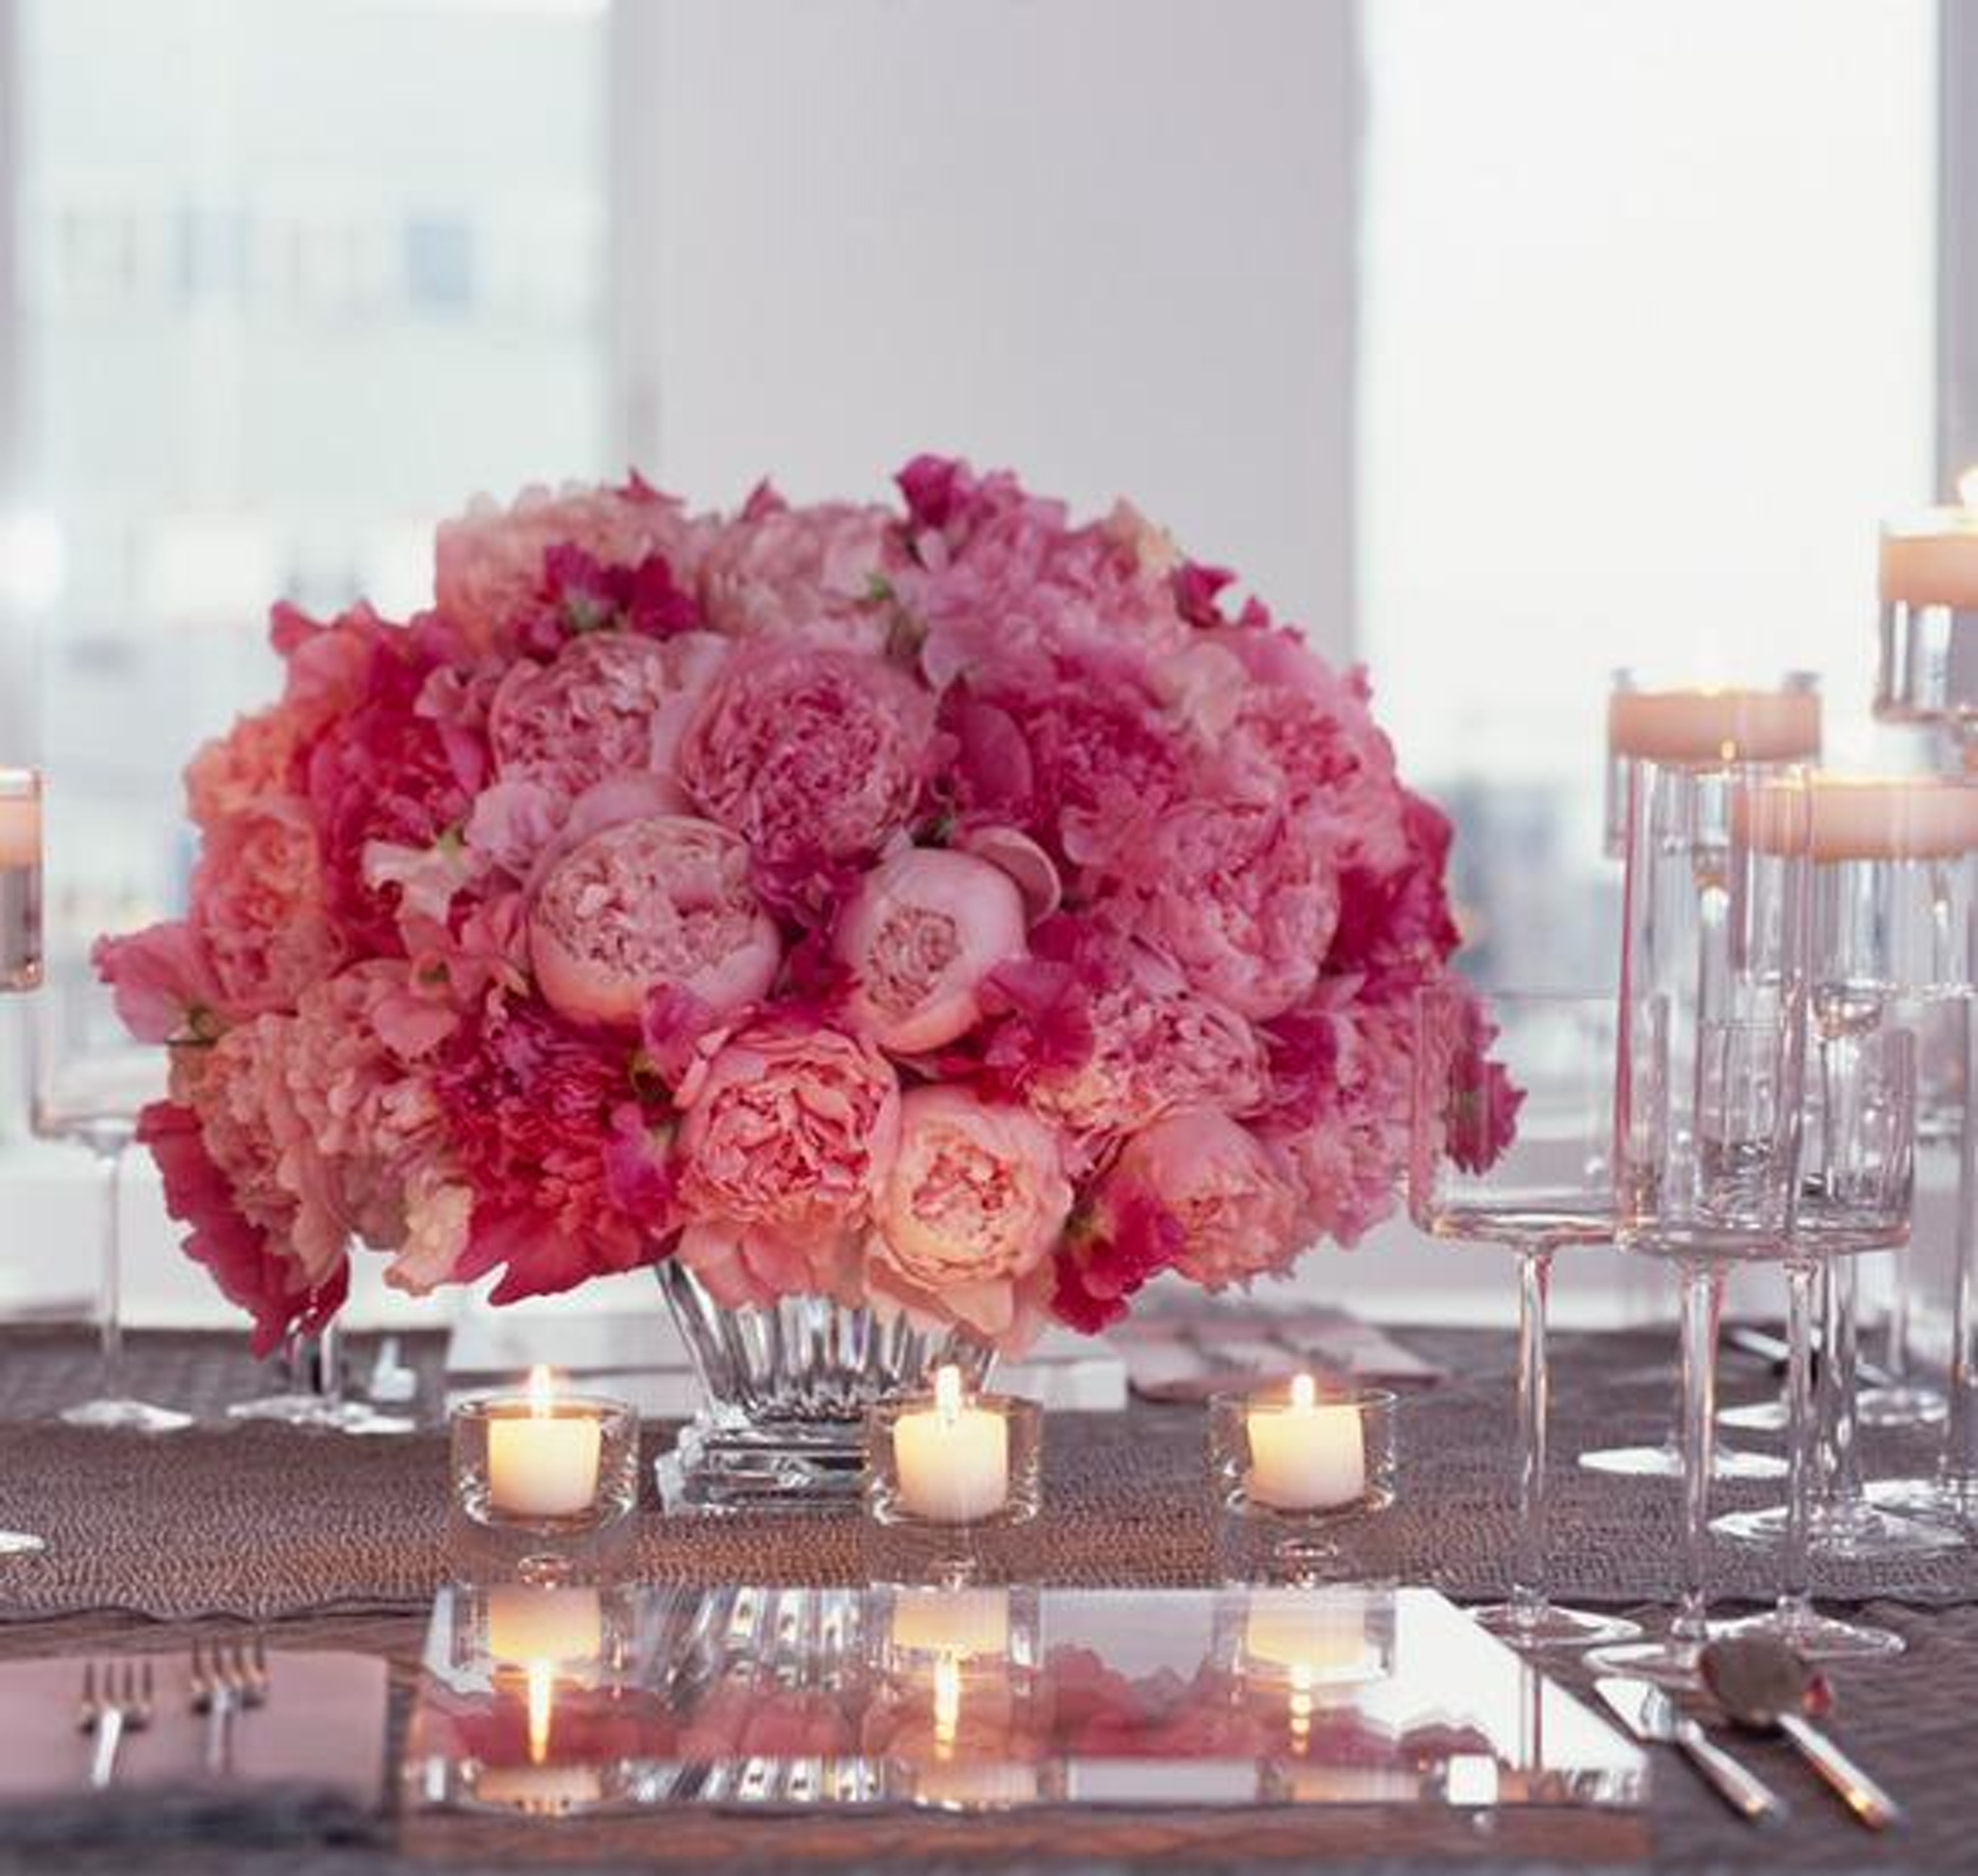 new york event designer - belle fleur